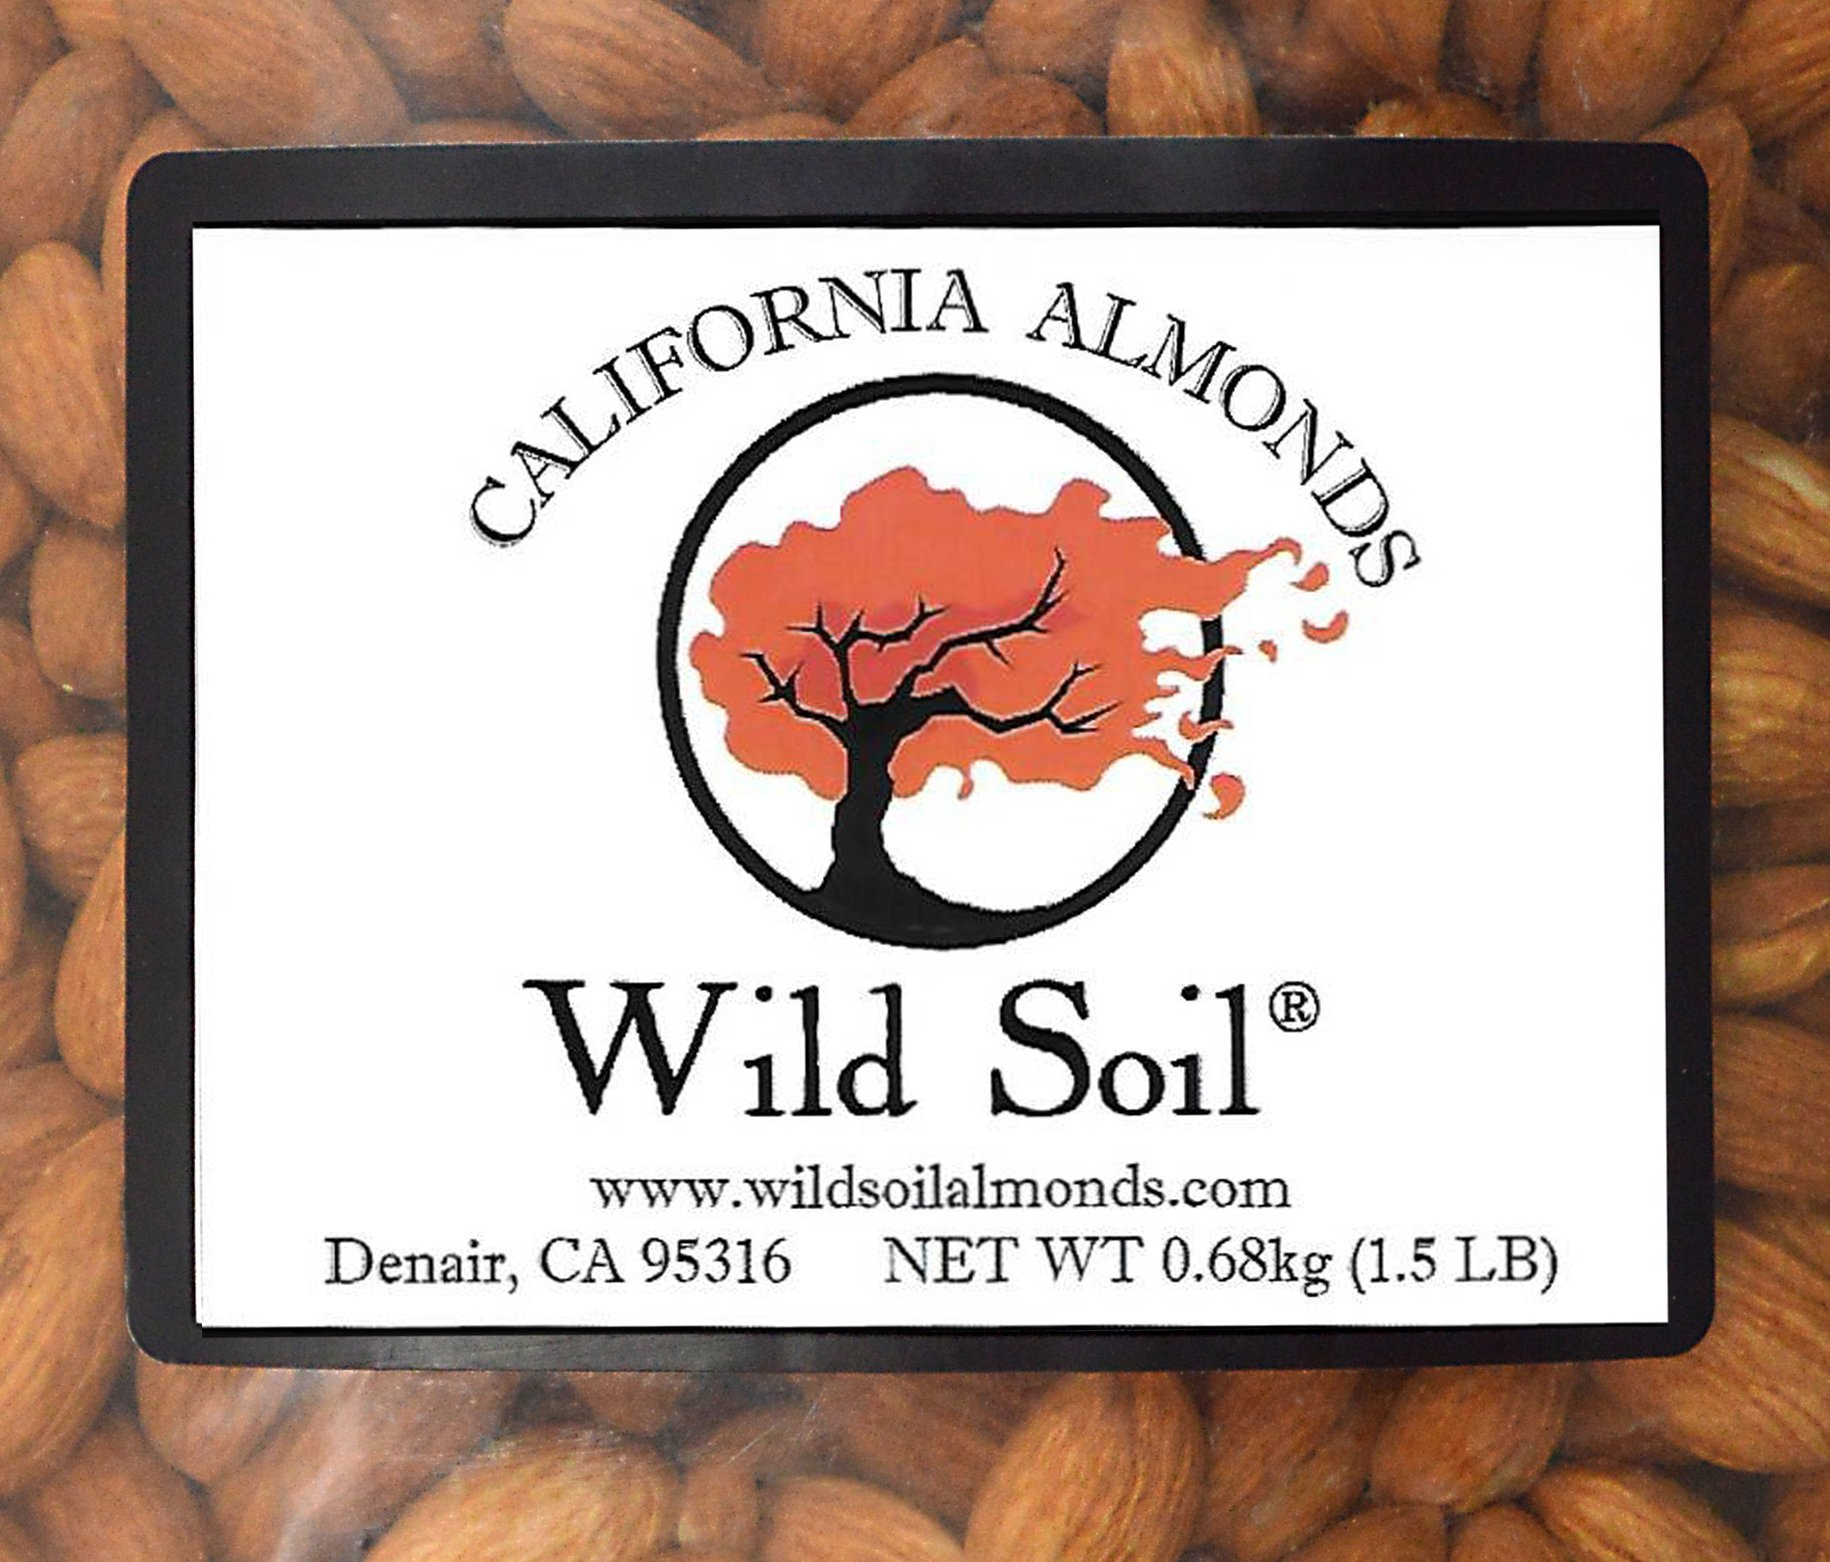 Wild Soil Almonds - Distinct and Superior to Organic, Steam Pasteurized, Probiotic, Raw 1.5LB Bag by Wild Soil (Image #4)